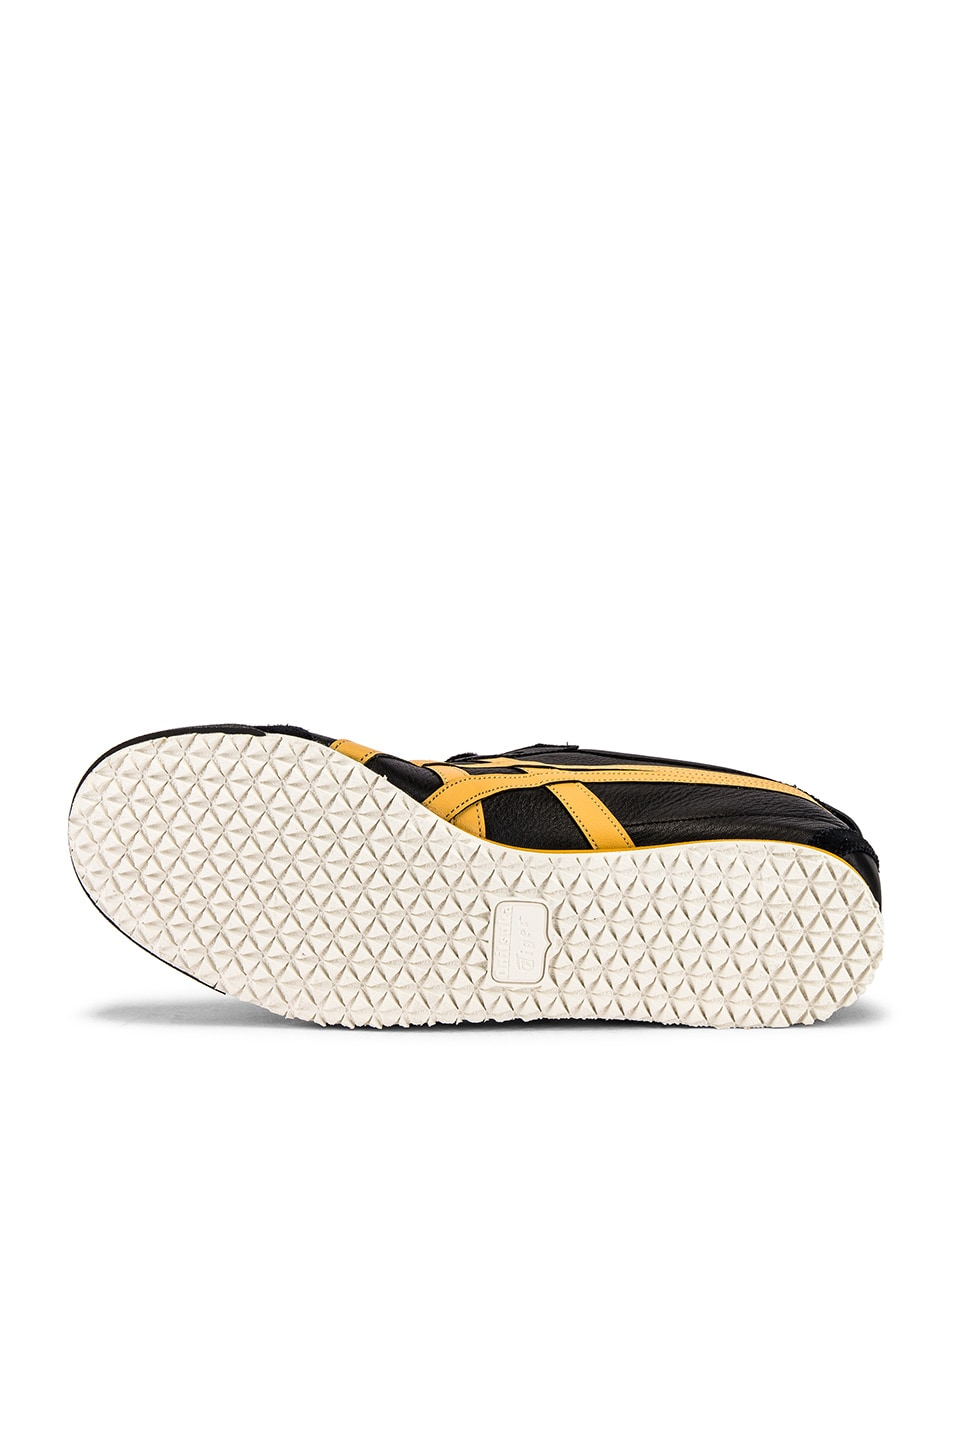 Image 6 of Onitsuka Tiger Mexico 66 in Black & Honey